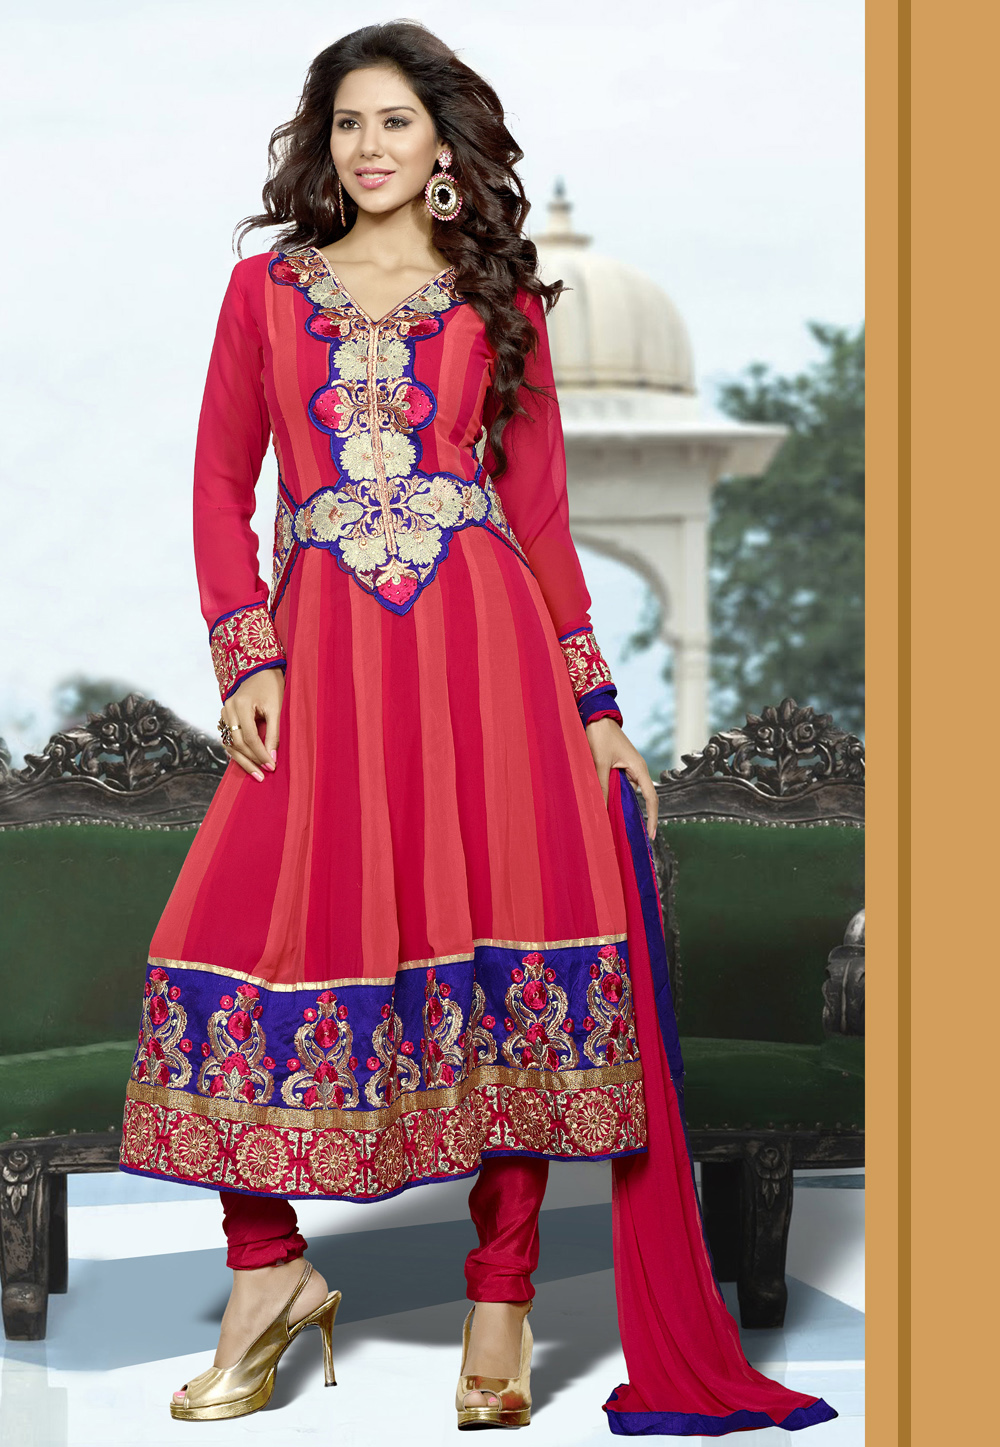 Indian Fashion Churidar Suits Designs Collection 2015 16: Traditional Indian Fashionヅ ツ ッ